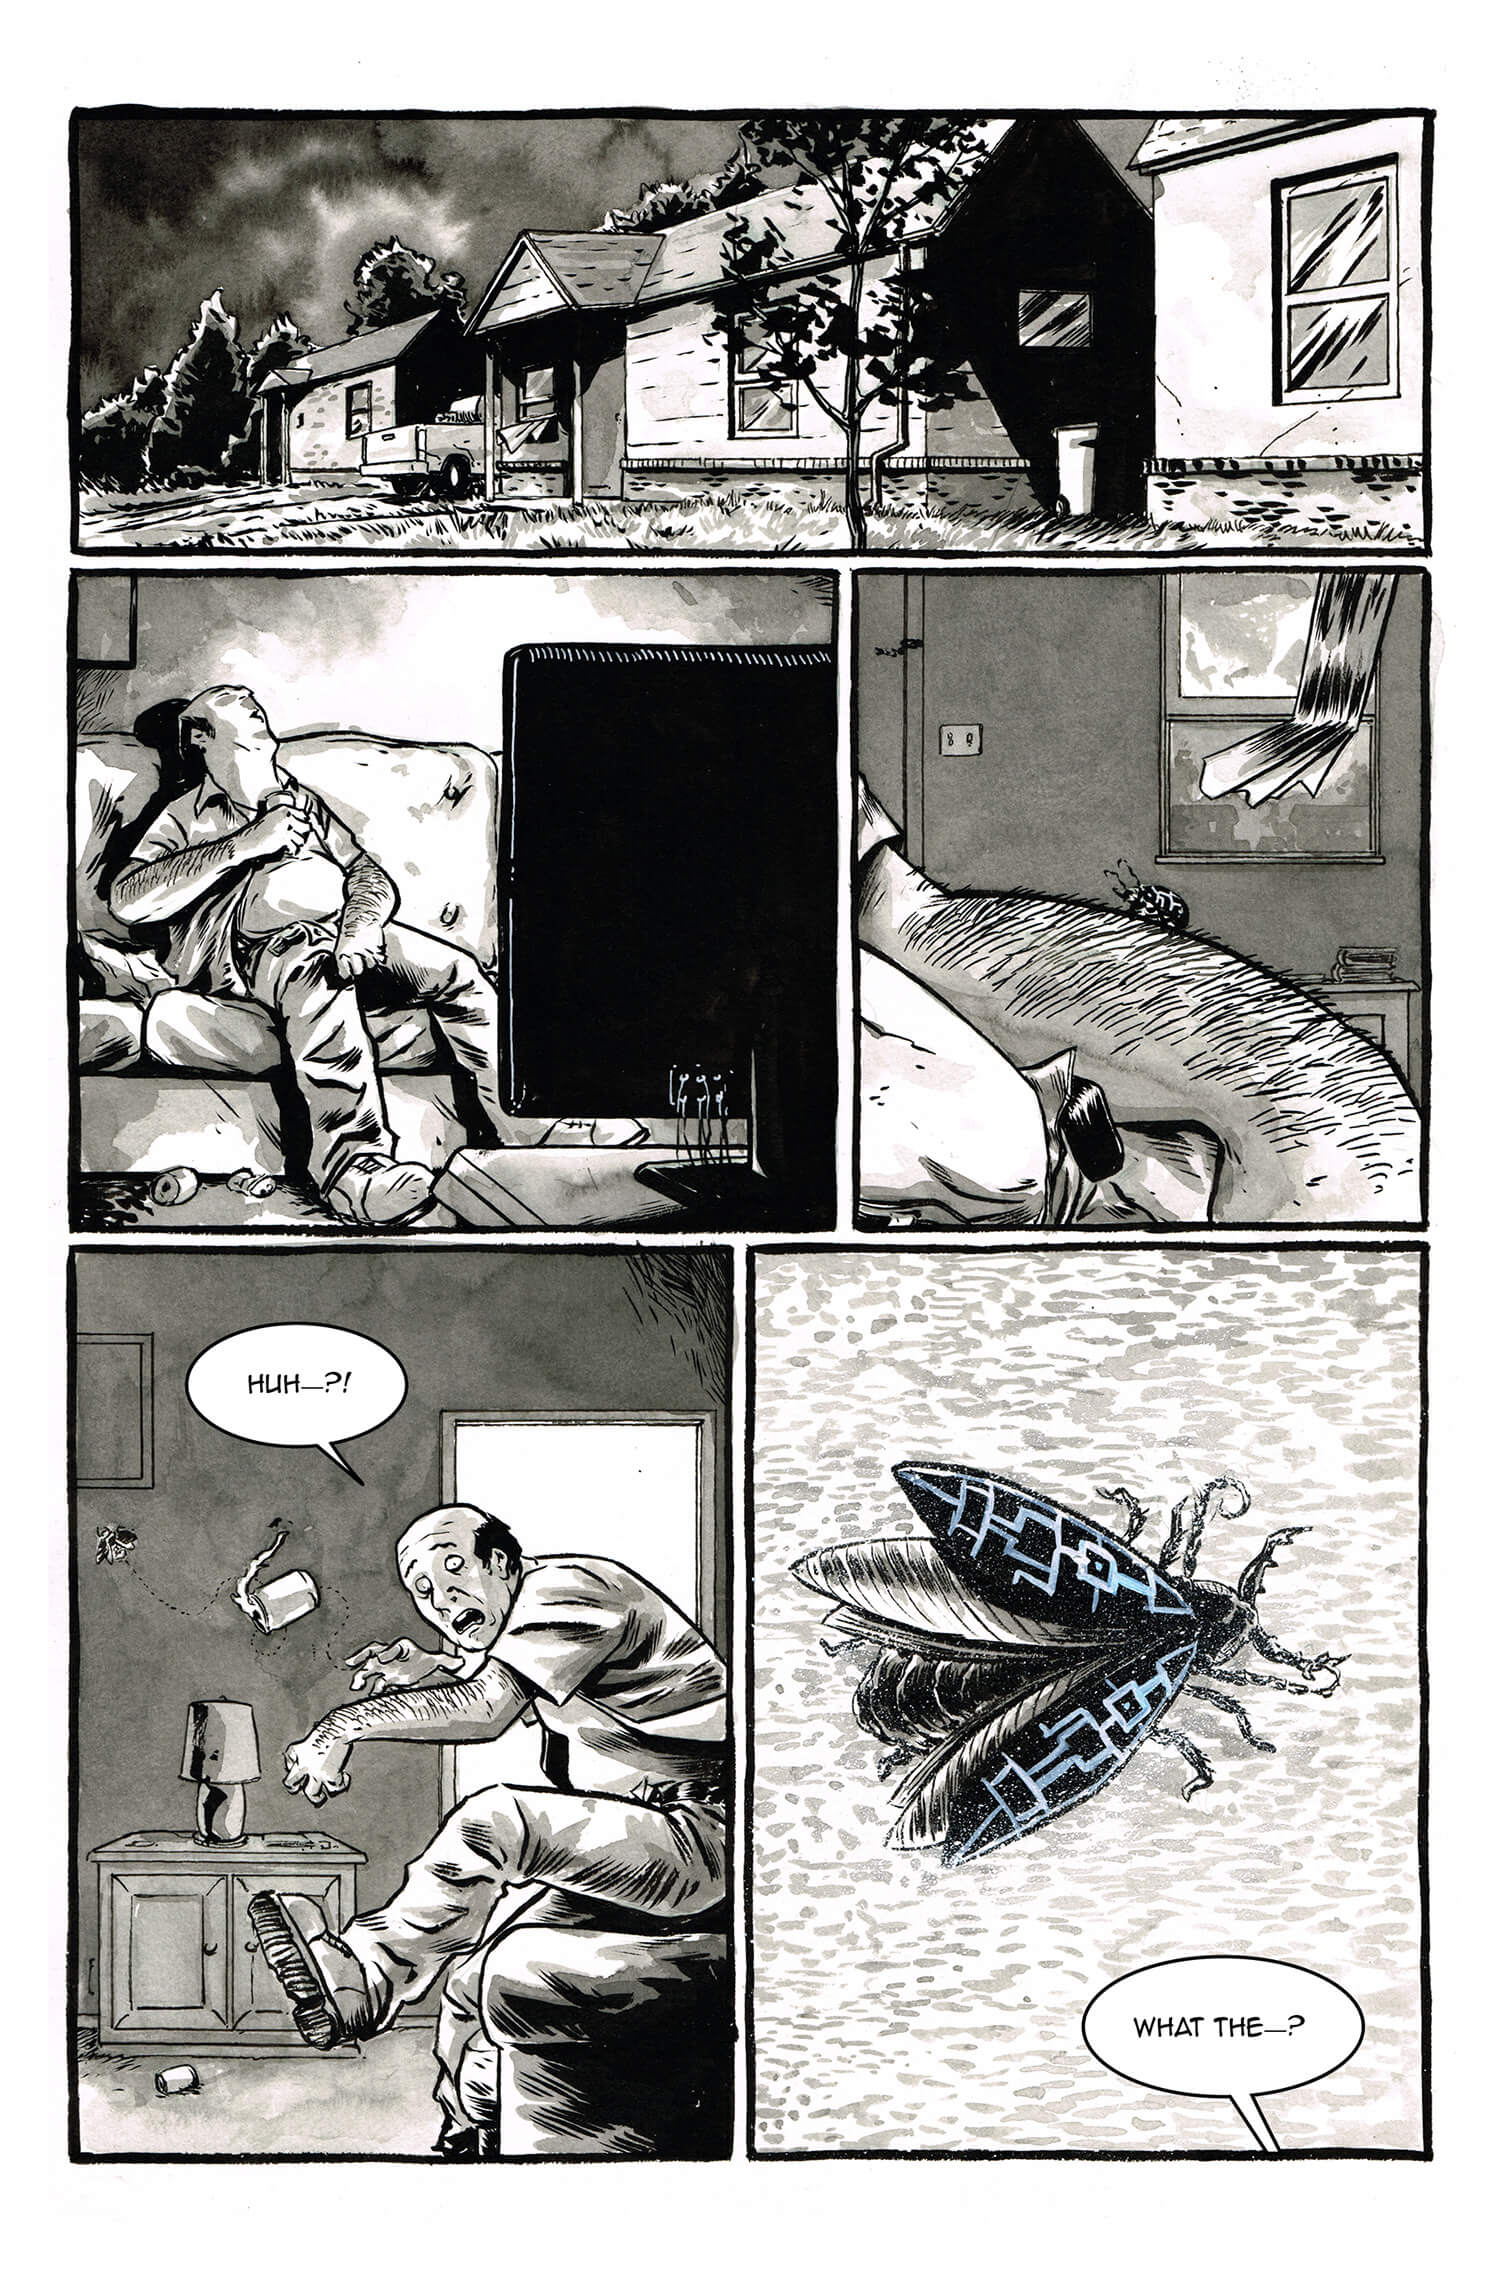 The Exterminator, page 5, by Sam Costello and Kelly Williams